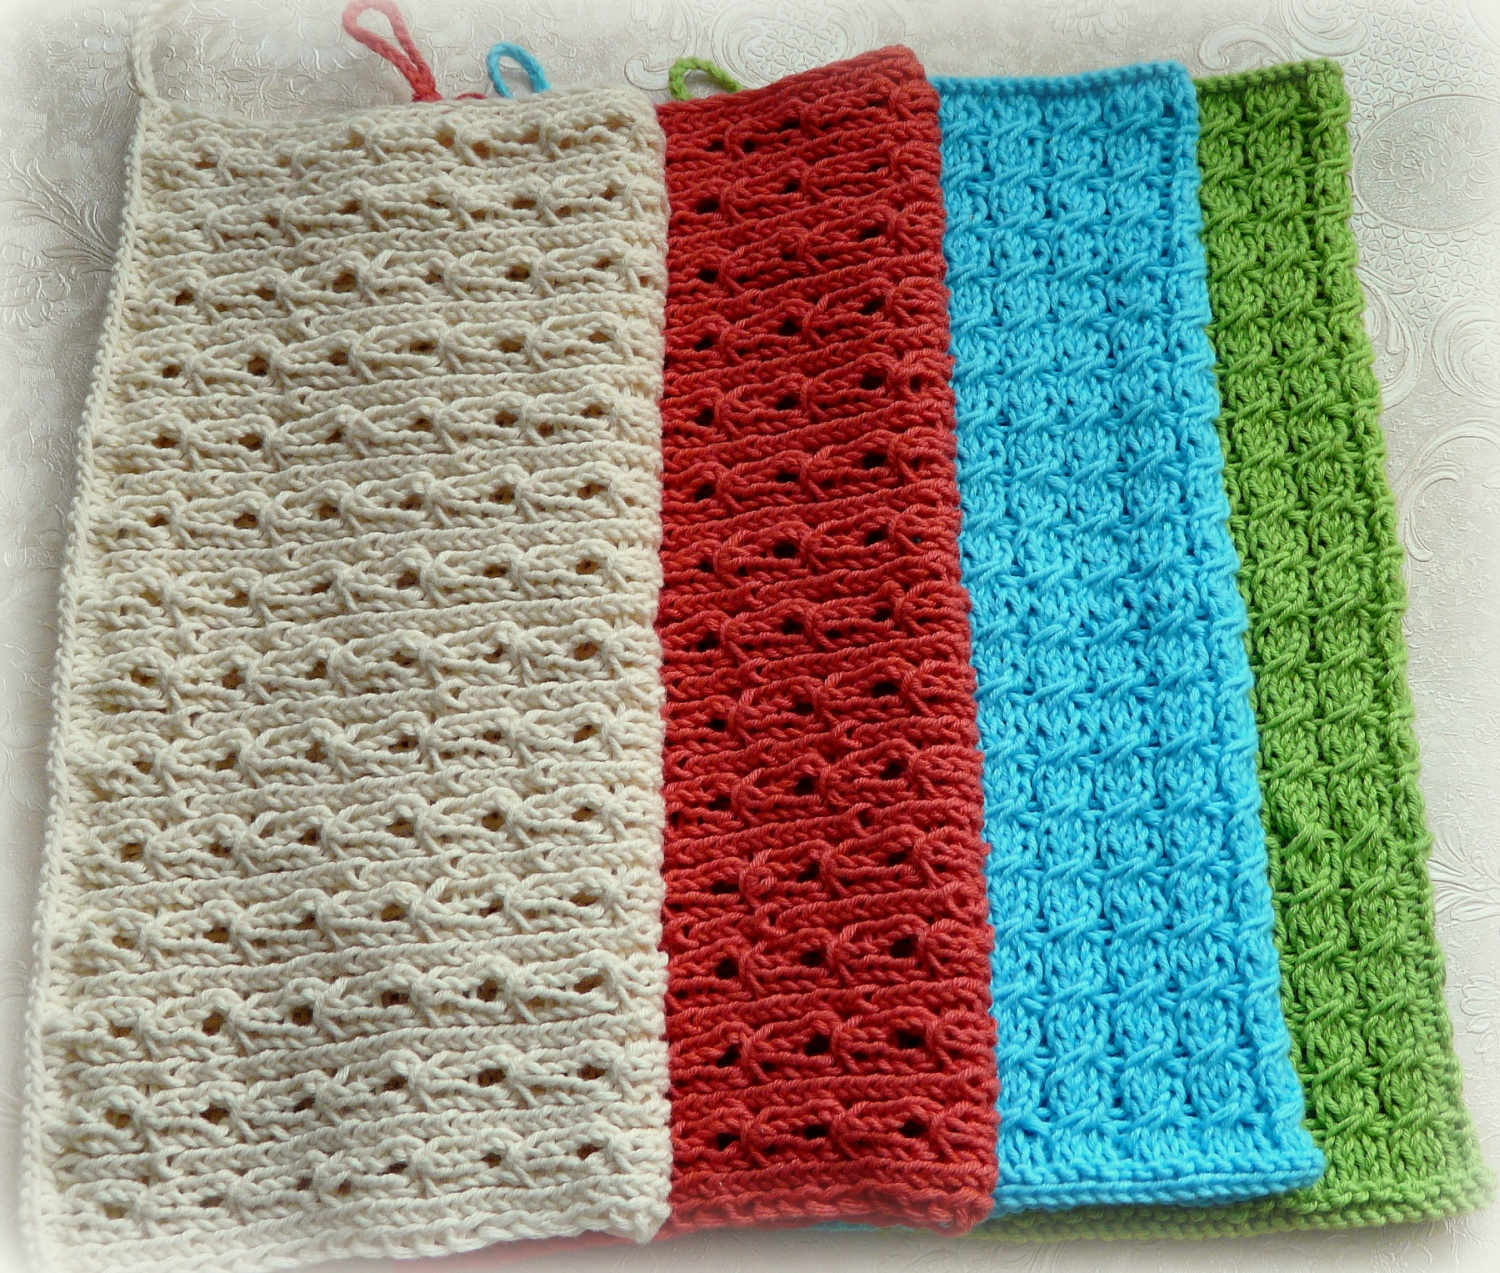 knitted kitchen cloths /towels